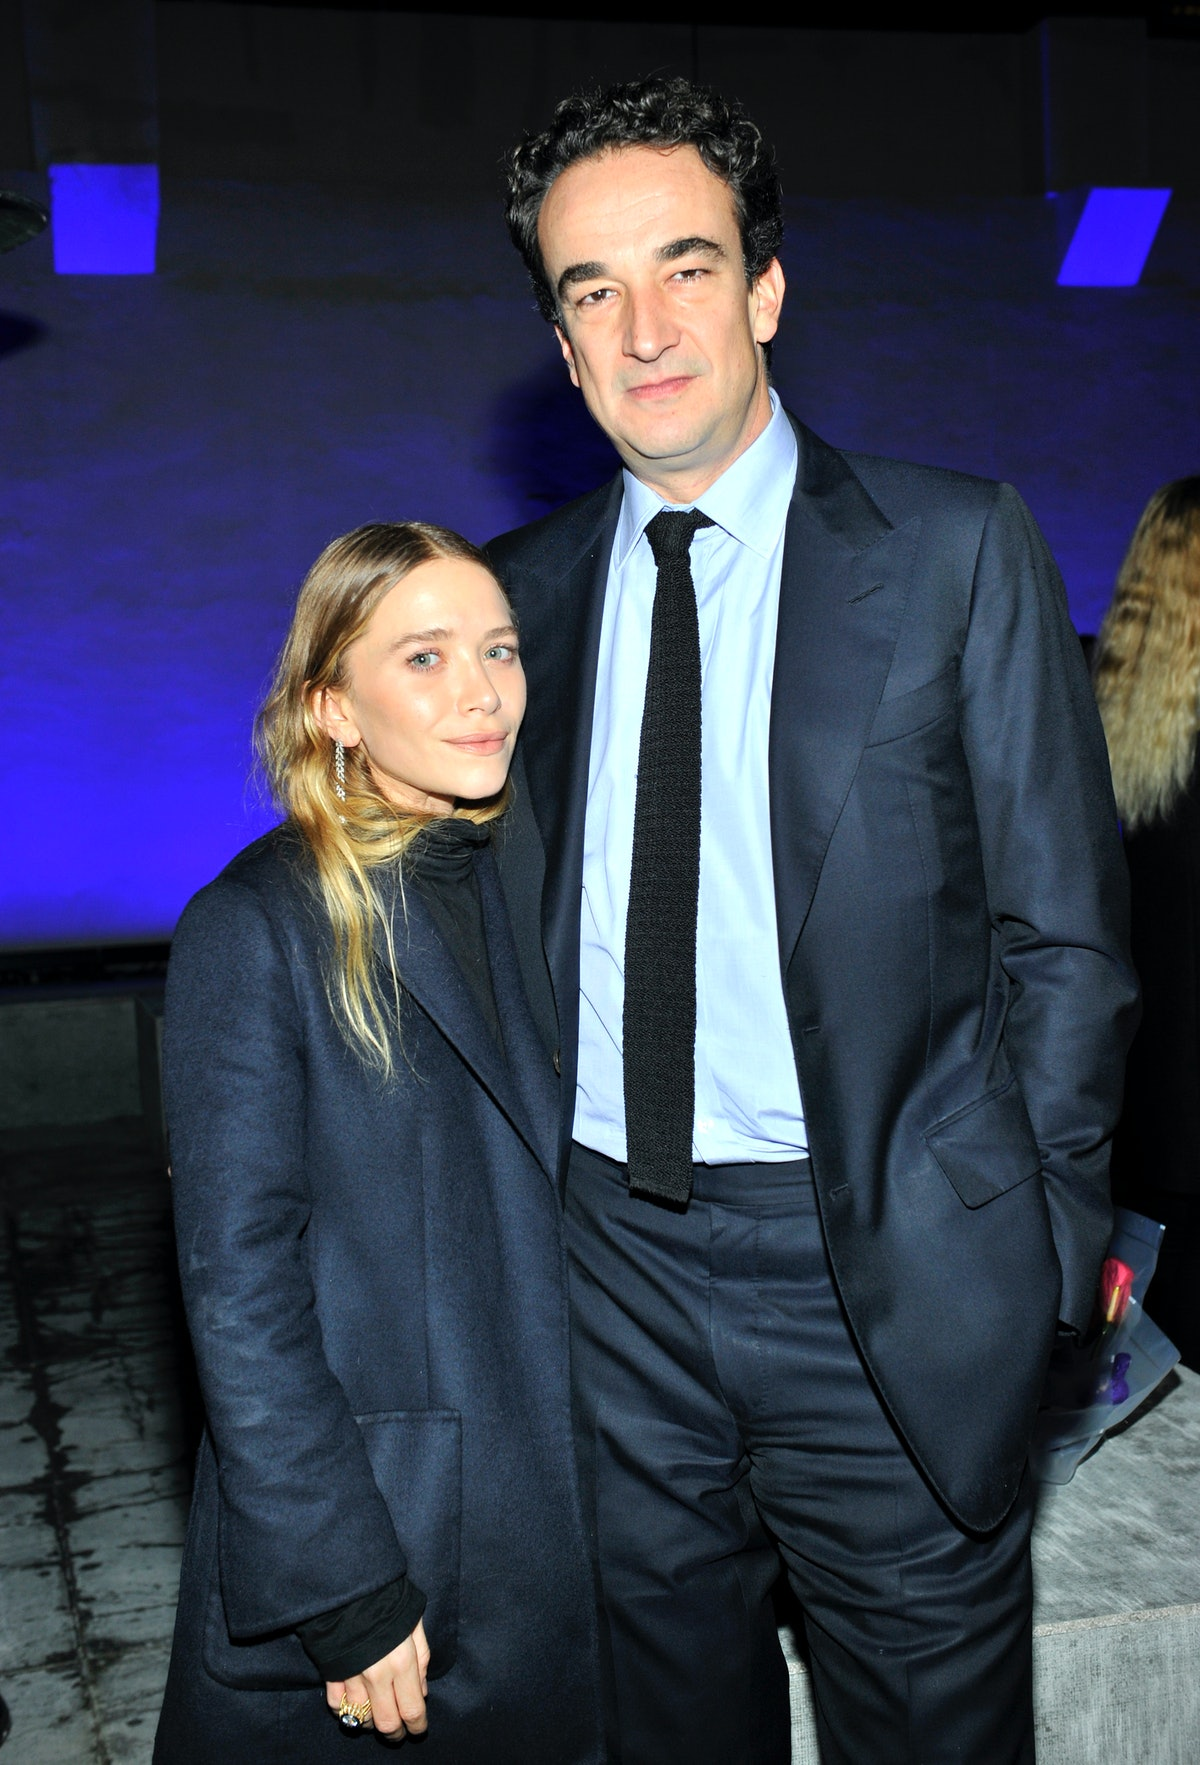 Mary-Kate Olsen and Olivier Sarkozy's zodiac signs are both Gemini